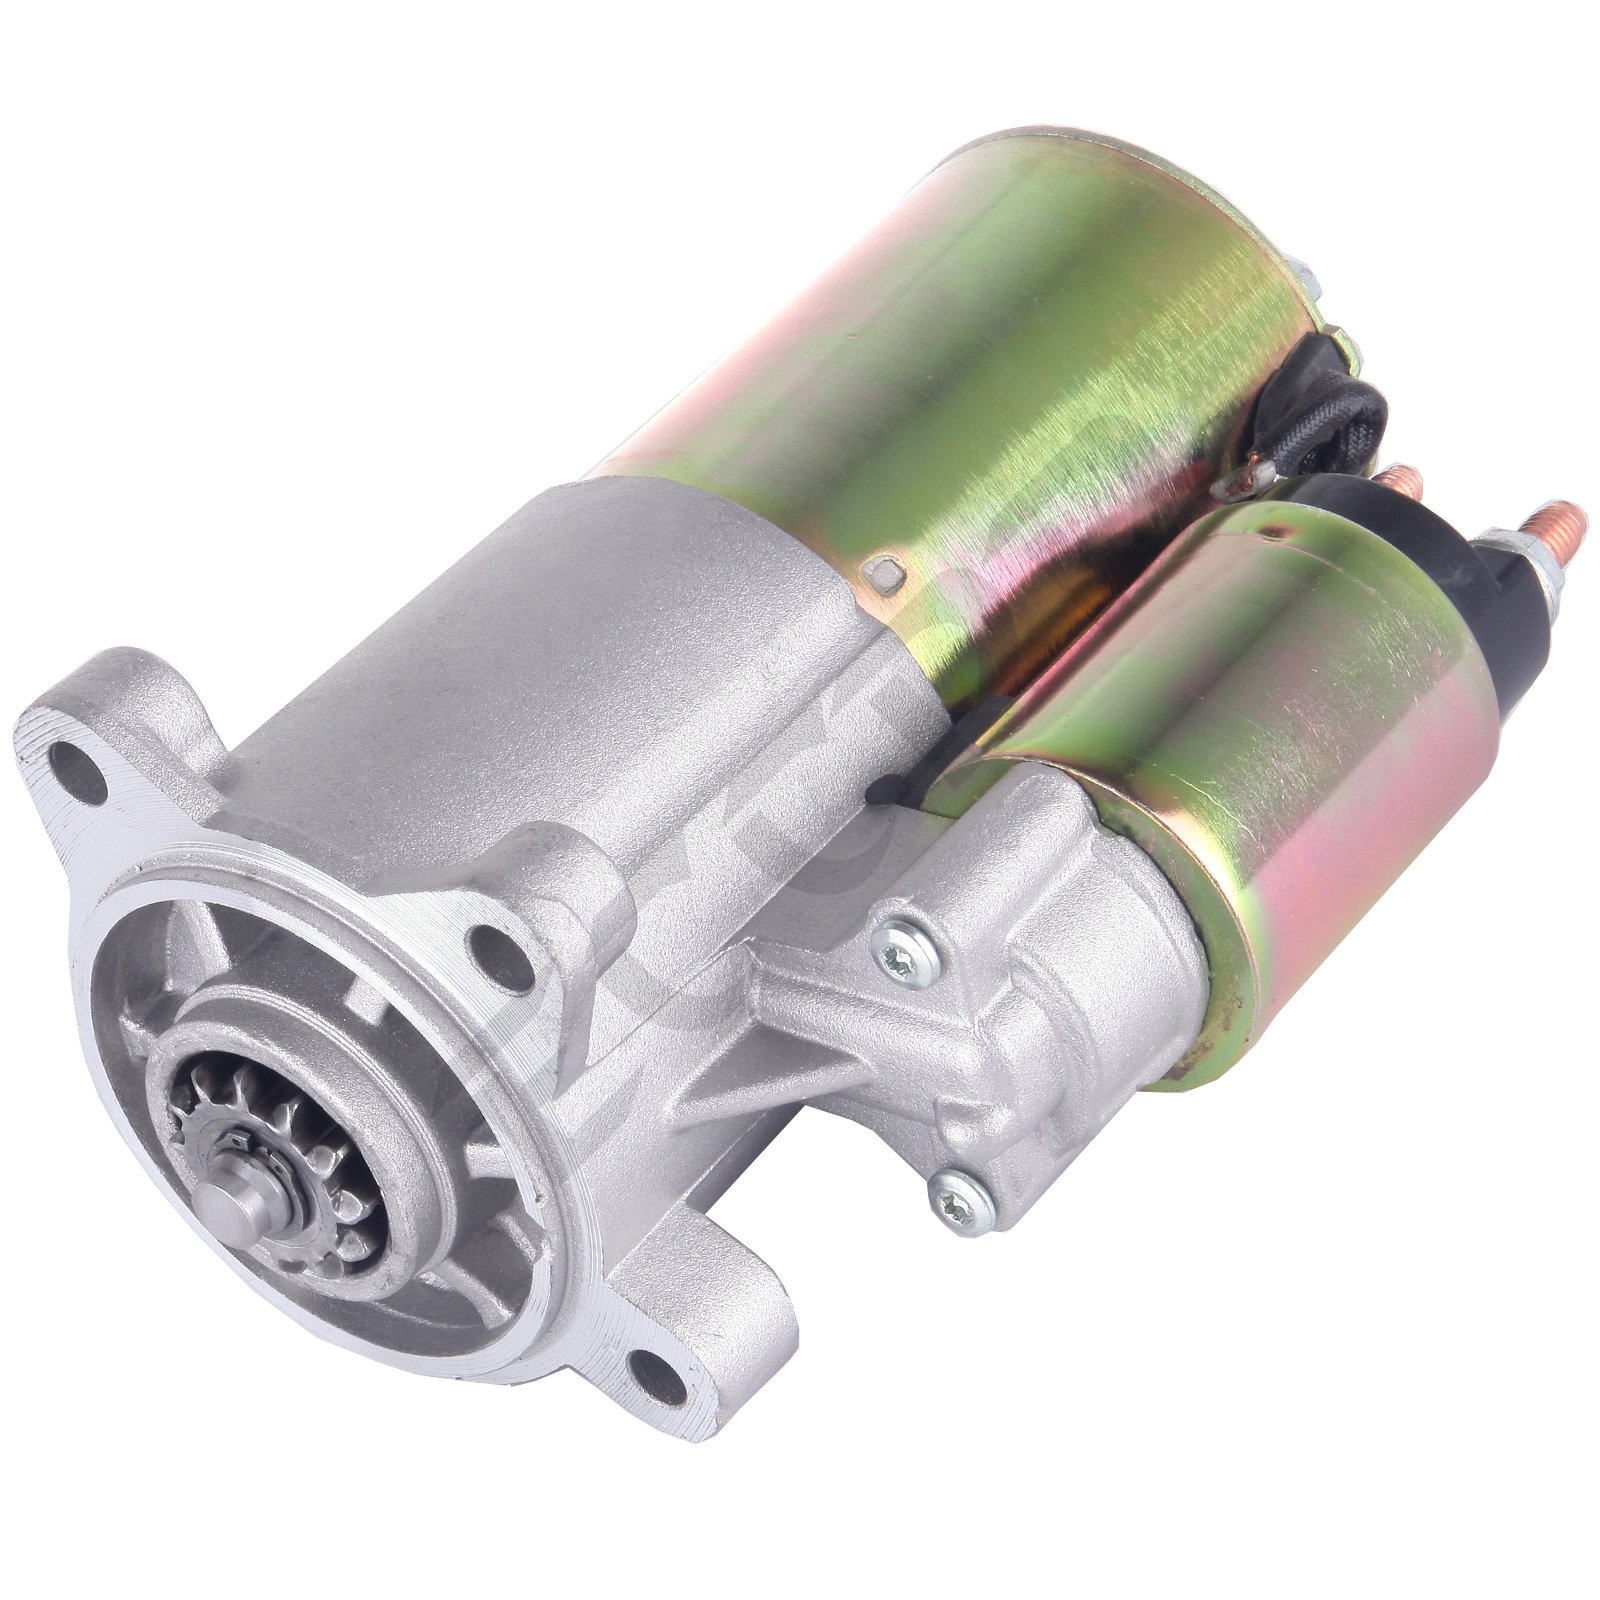 ECCPP New Starter For SFD0024 Ford AUTO F-SERIES PICKUPS MUSTANG TRUCK EXCURSION EXPEDITION 4.6L 5.4L 6.8L Starter 00 01 02 03 04 05